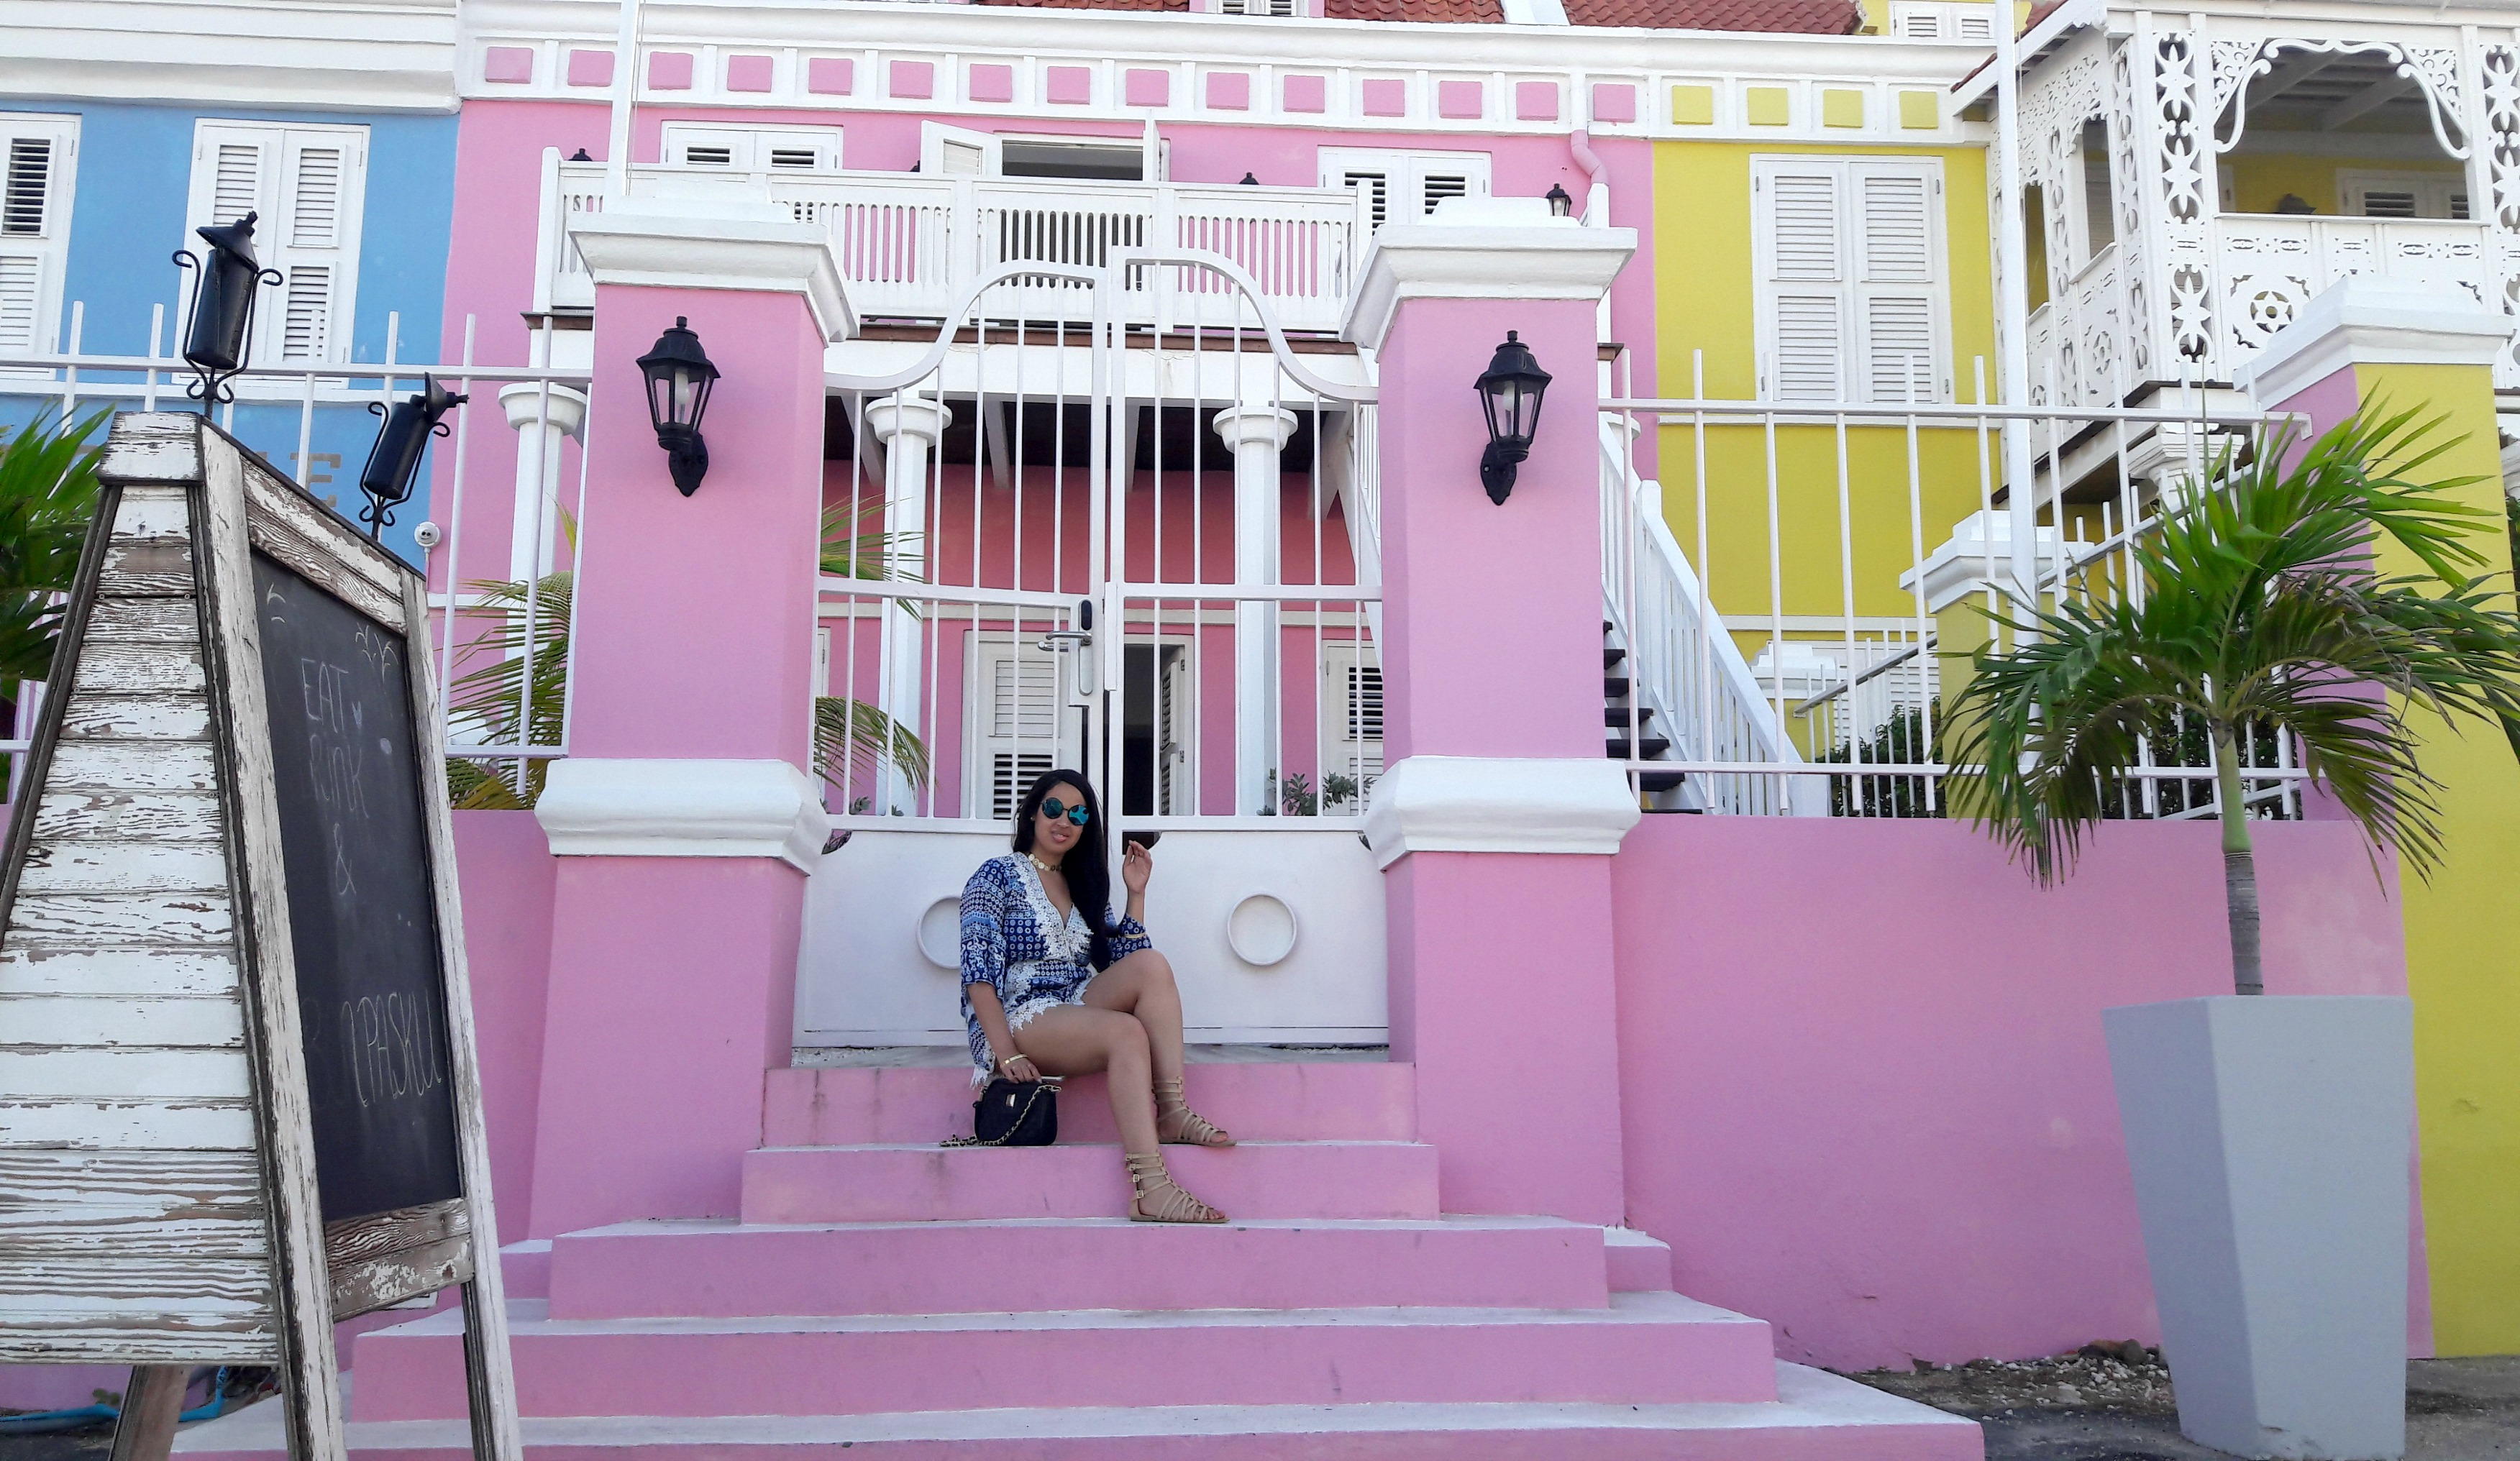 vibrant-colors-willemstad-curacao-11